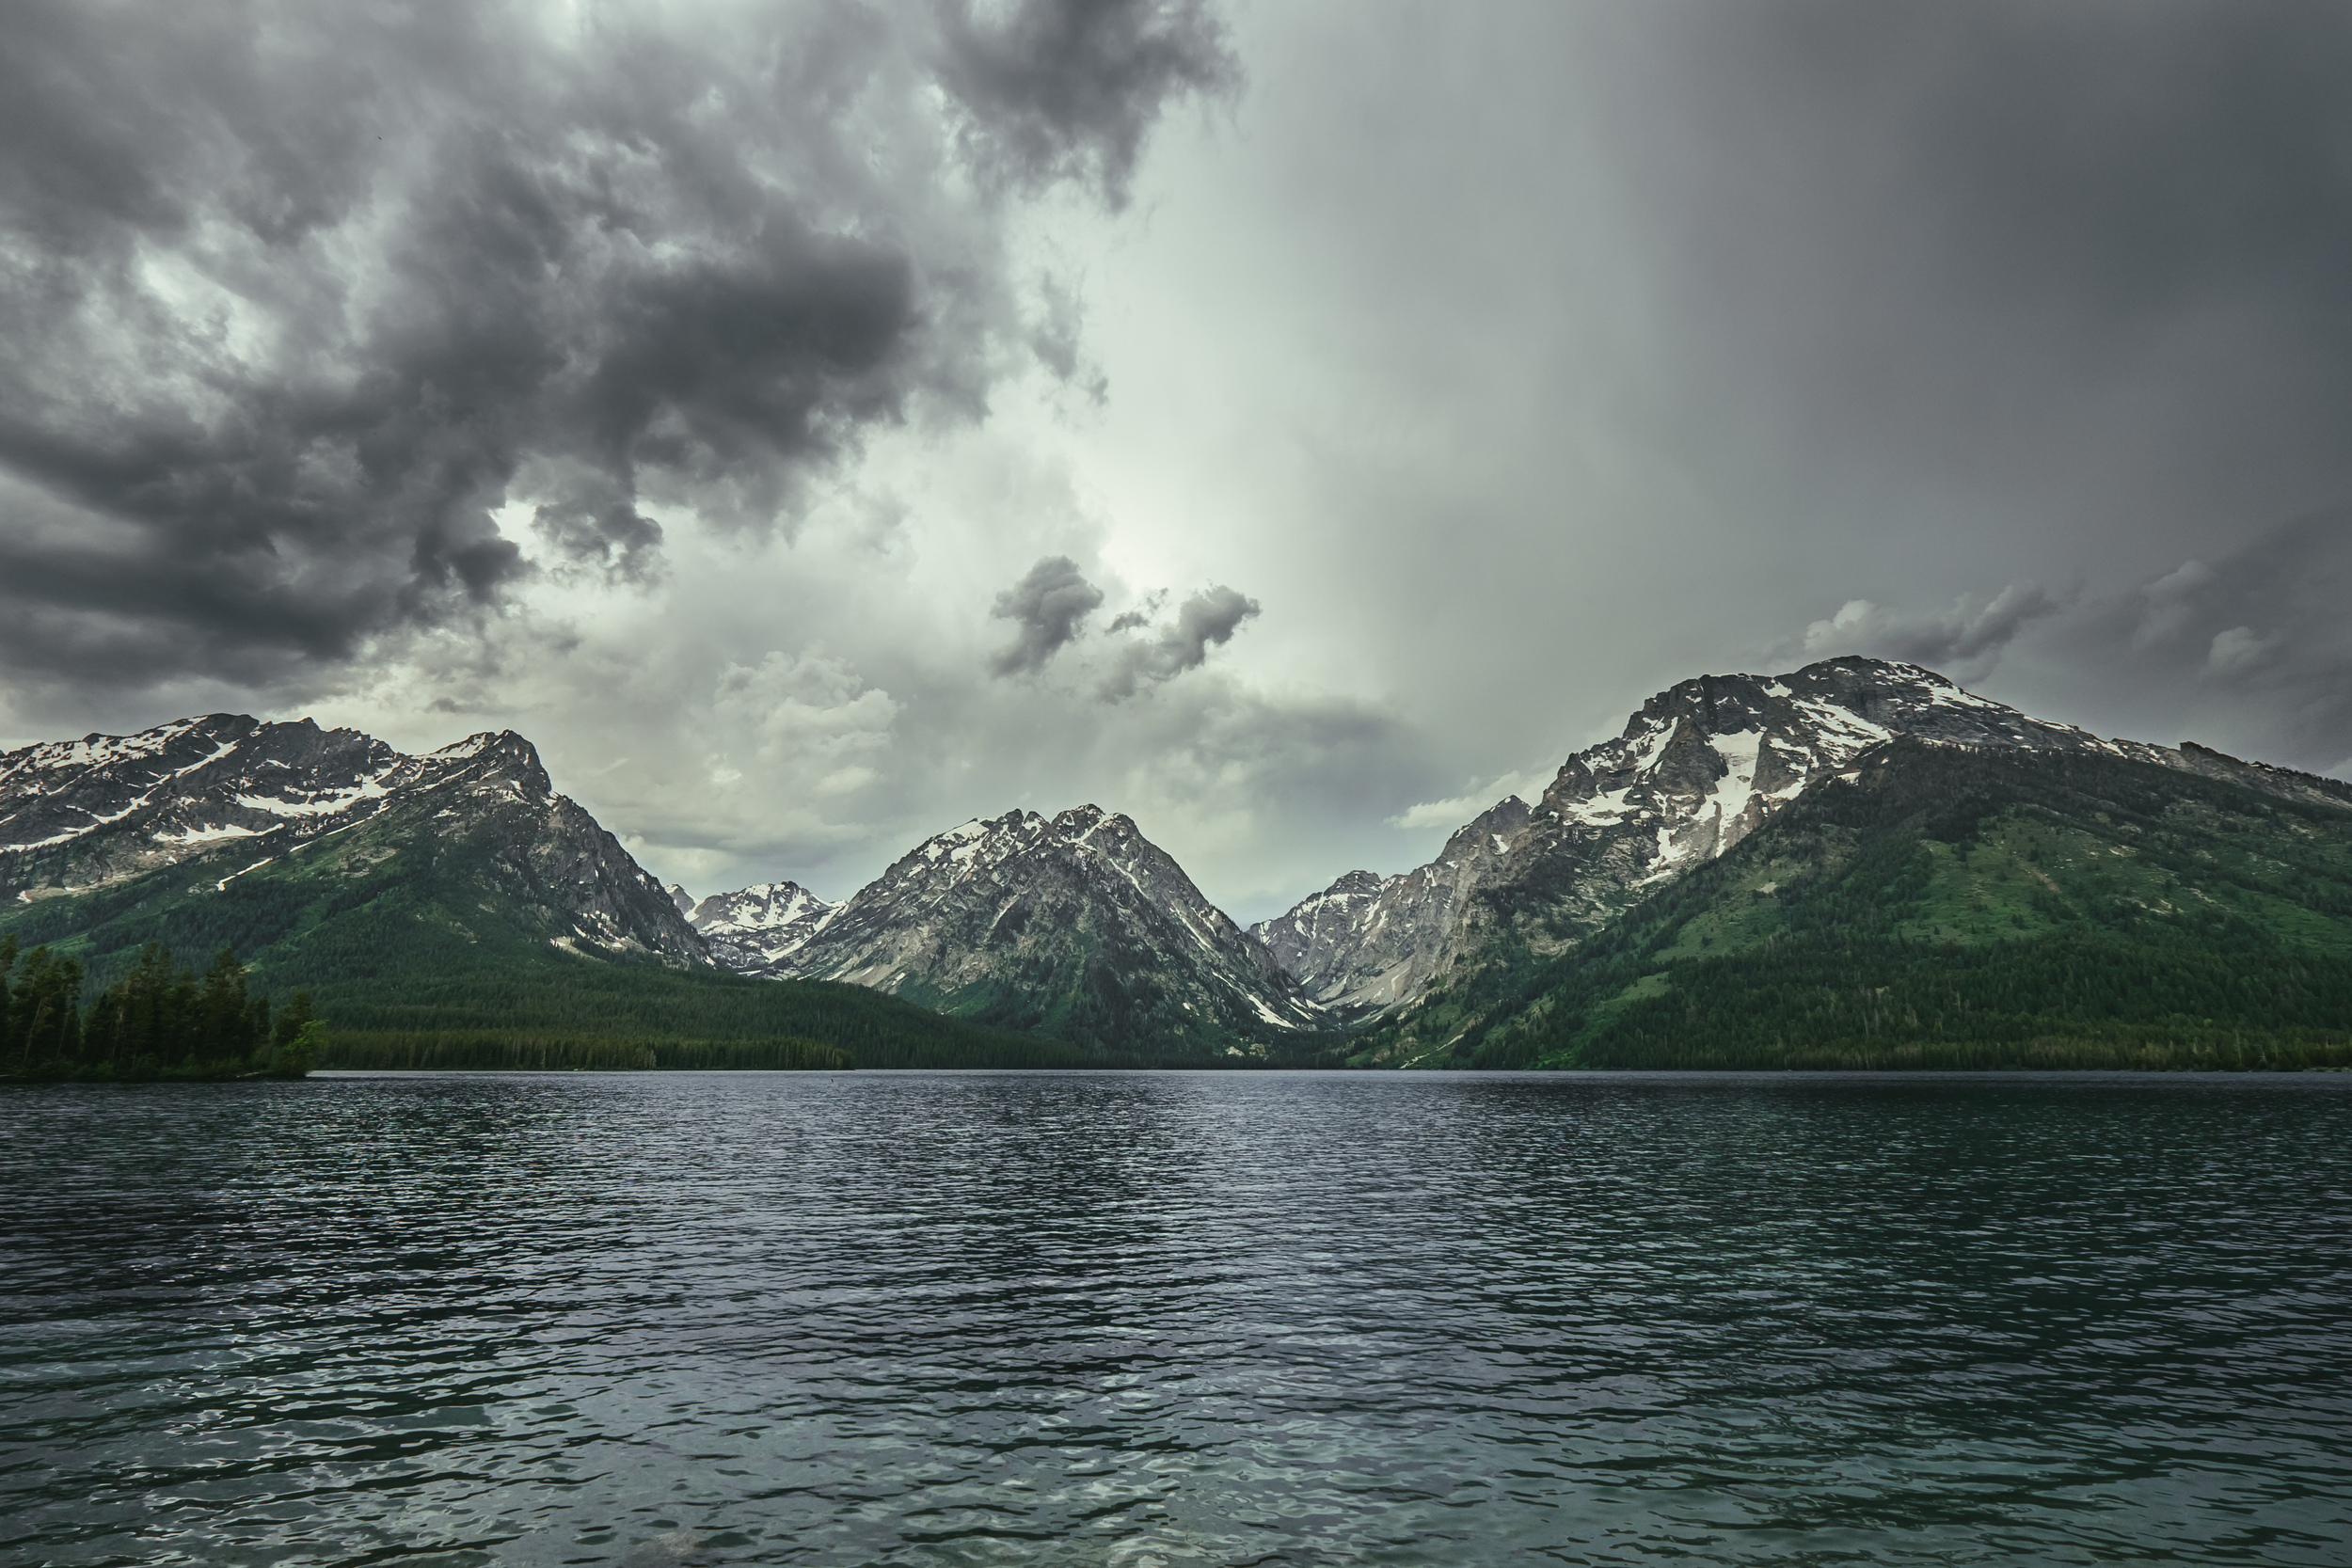 grand tetons clouds mountain water fine art print atlanta photographer atl photography002